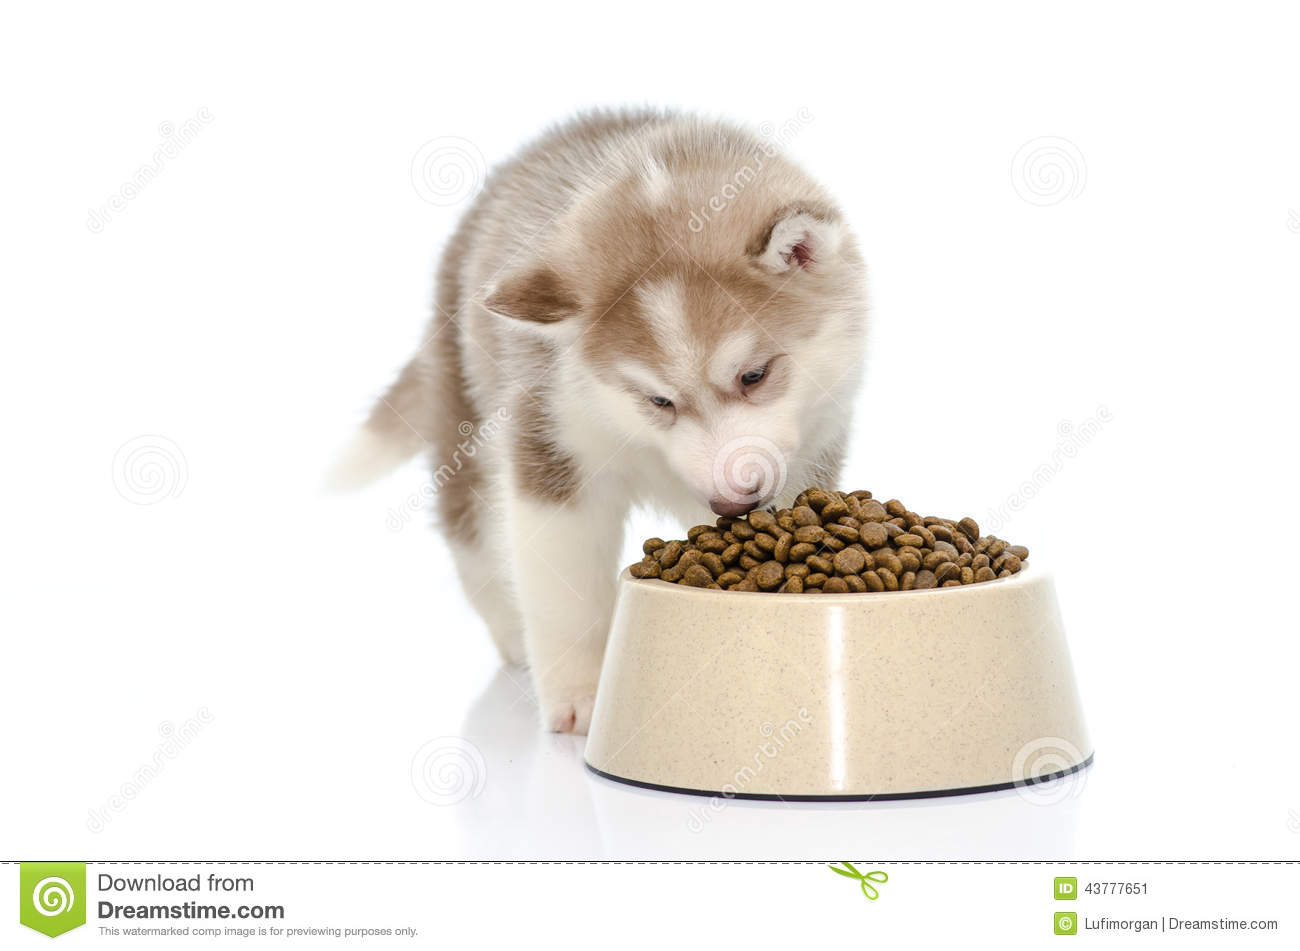 how to food train a puppy